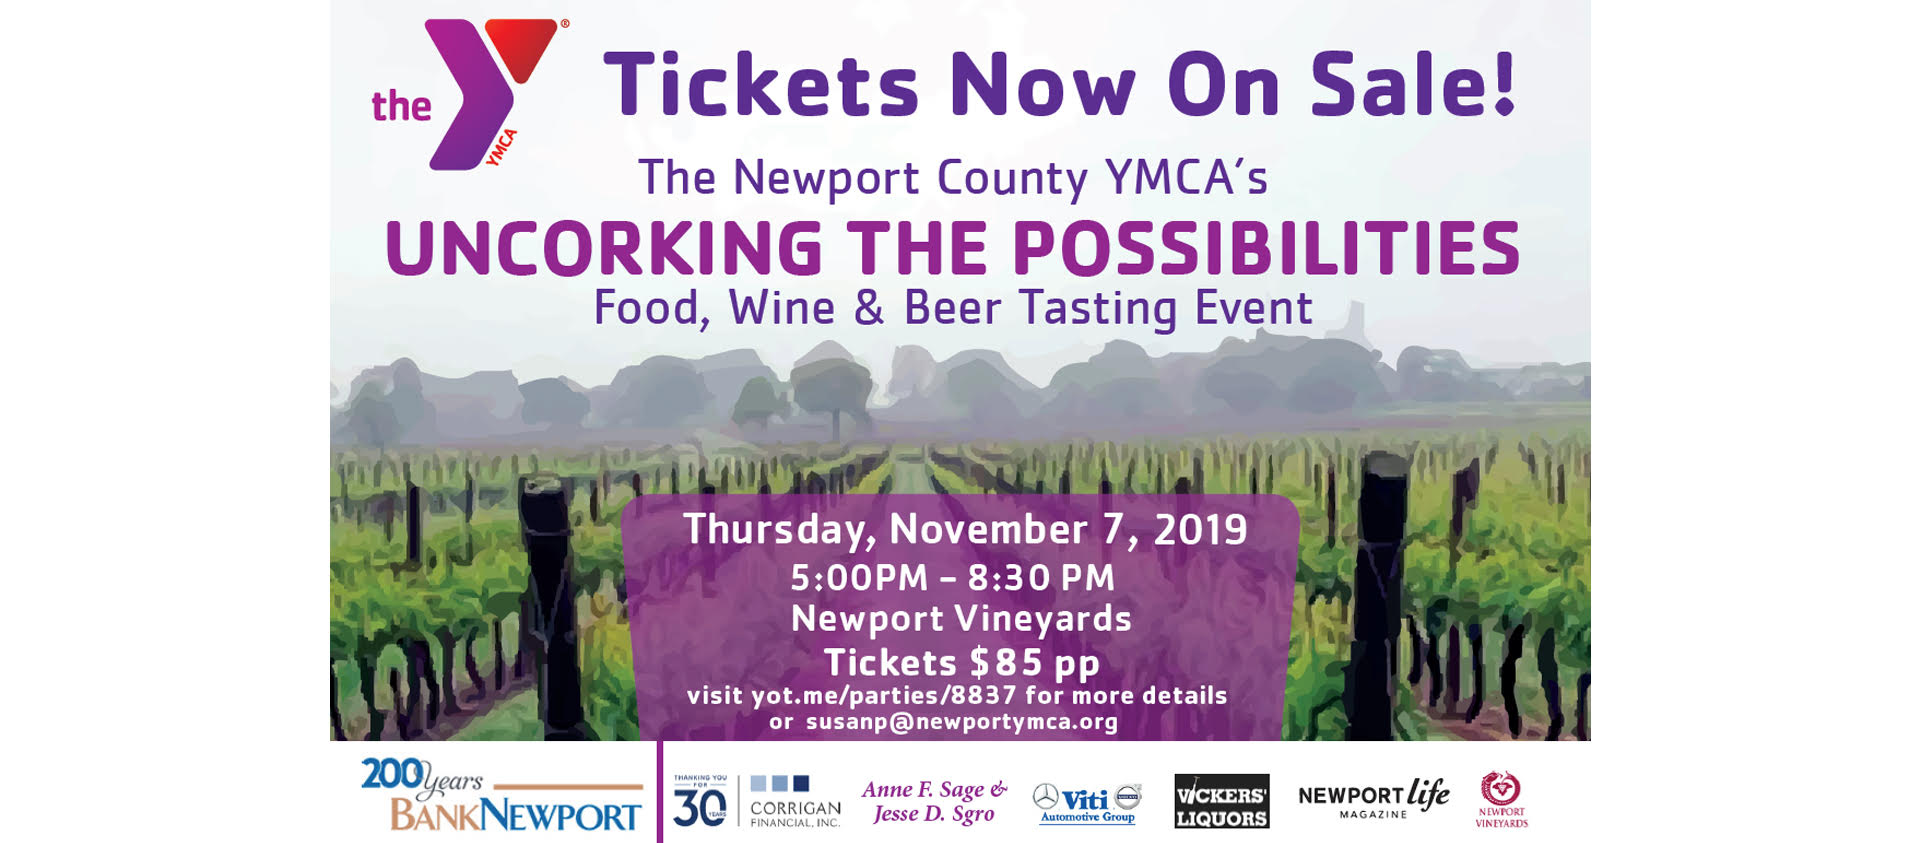 wine-tickets-for-yotme event